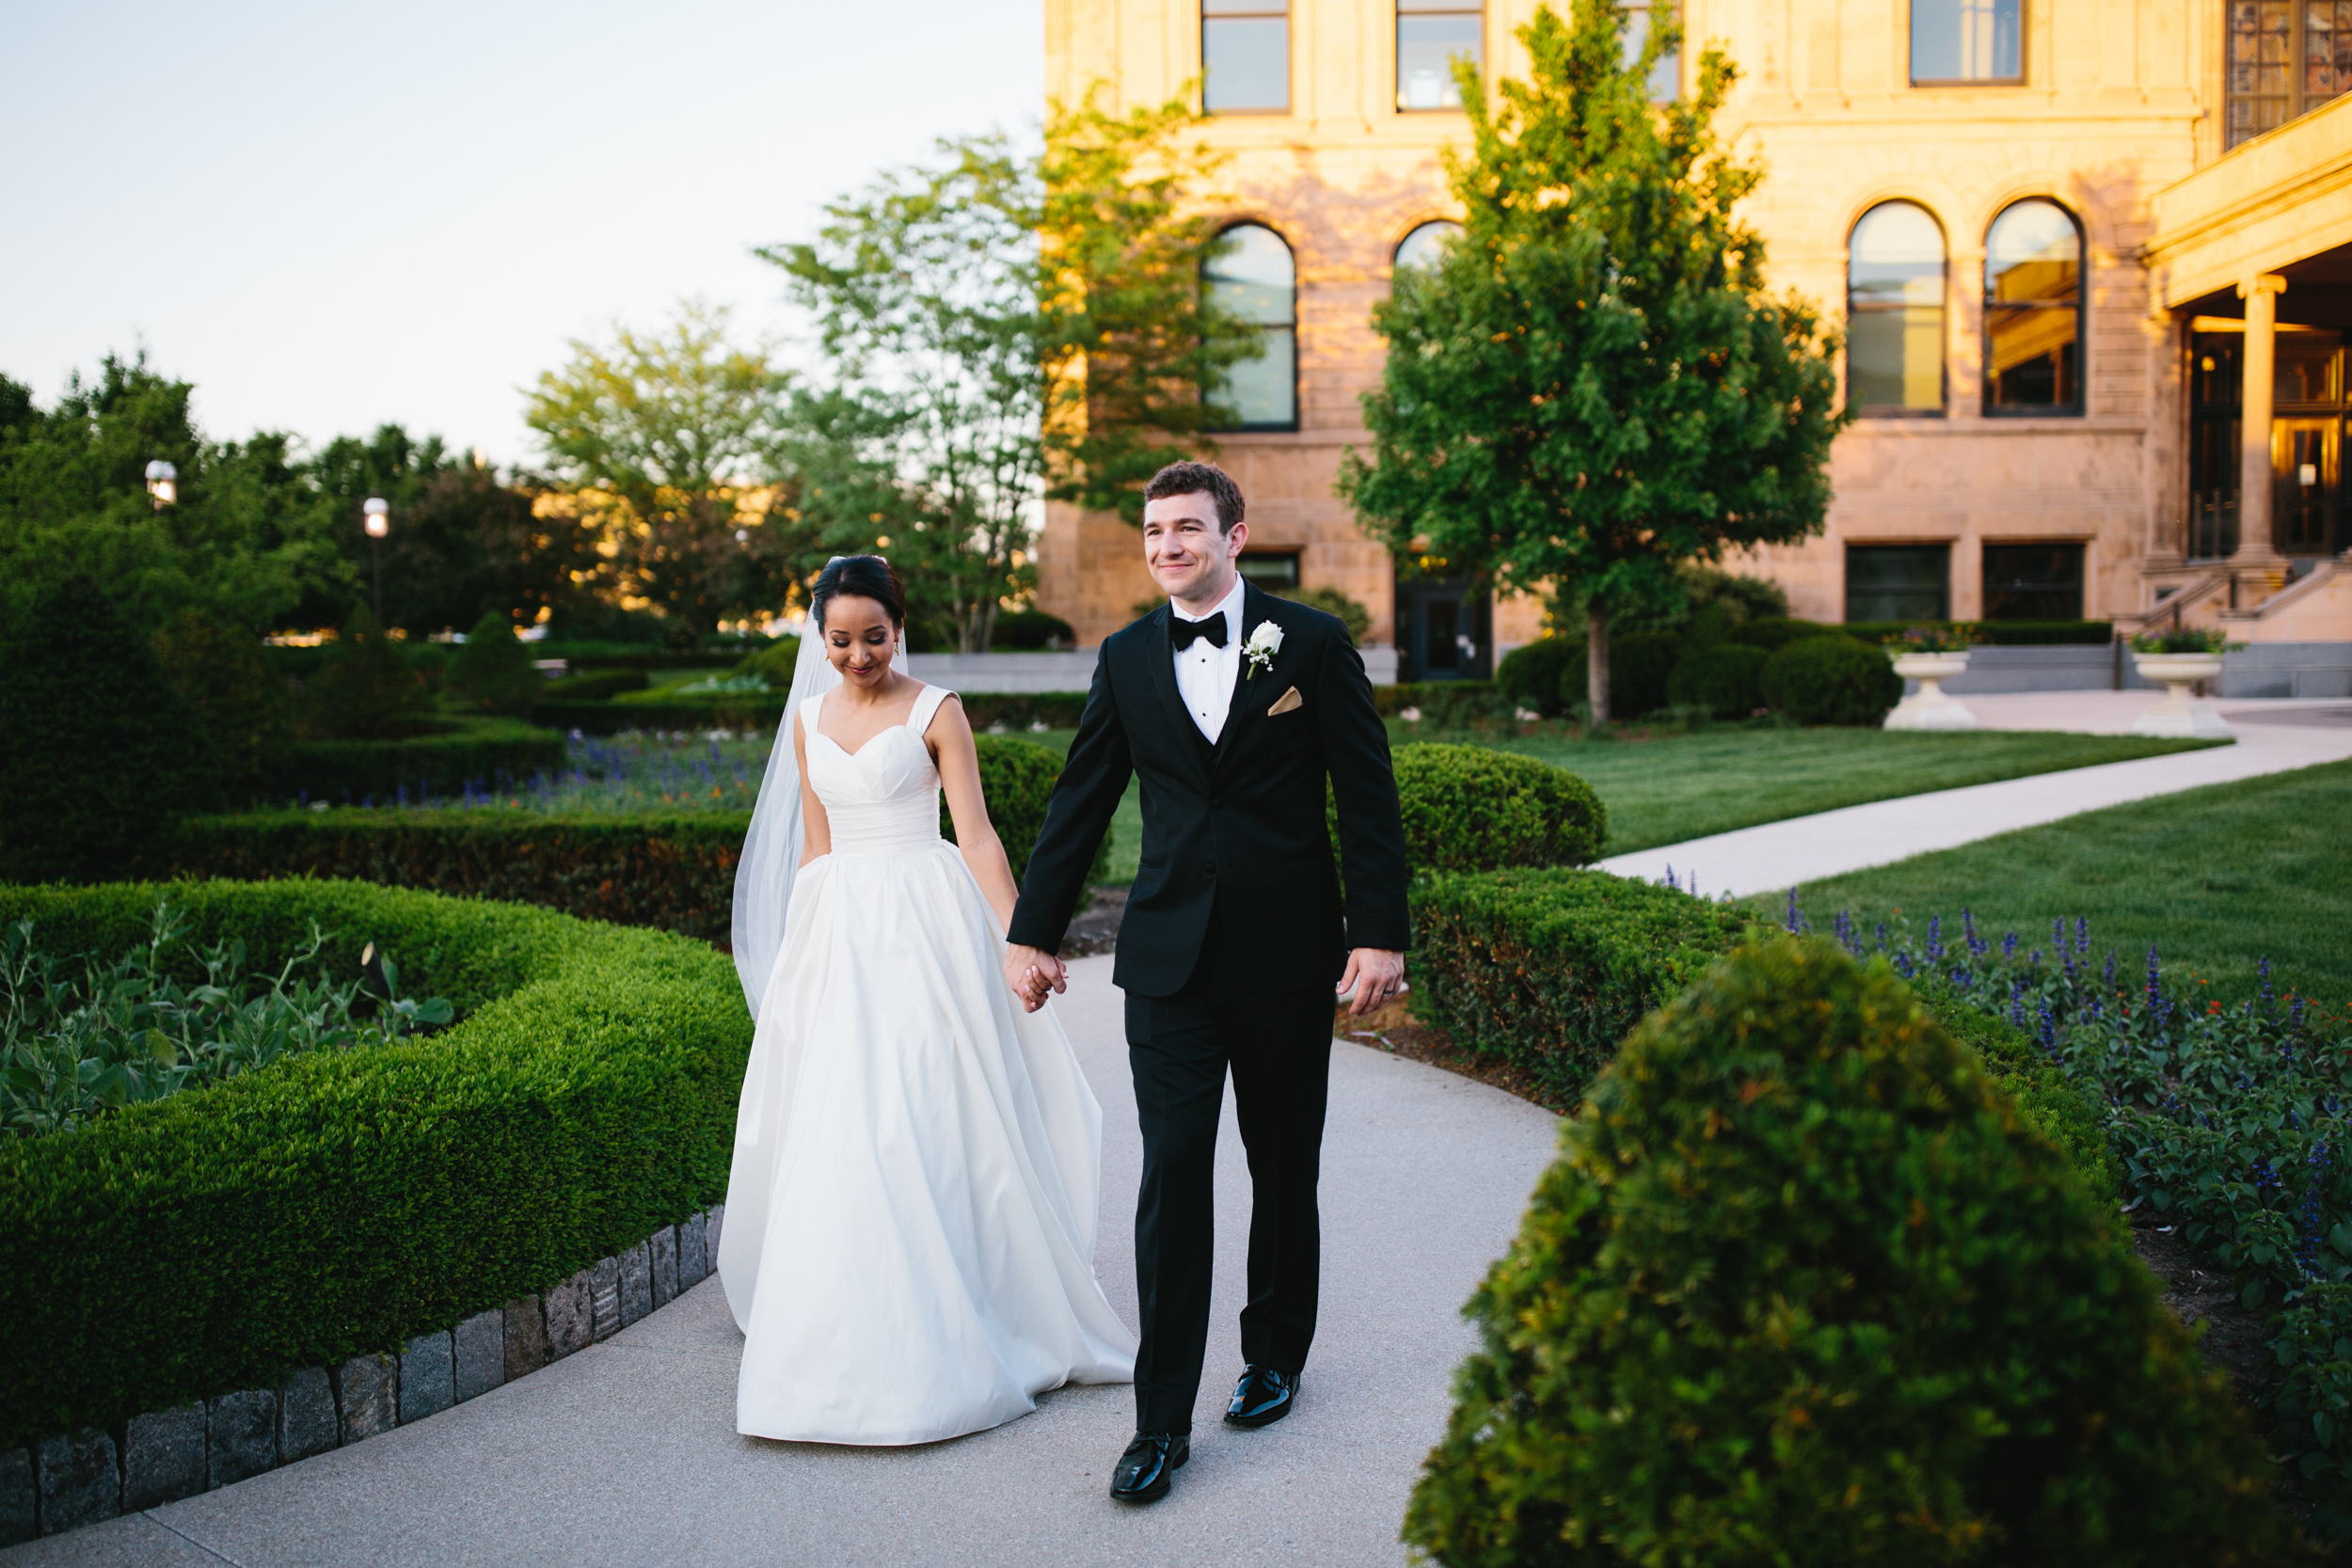 SHAUN + DARSHANA |  DES MOINES, IA   WEDDING